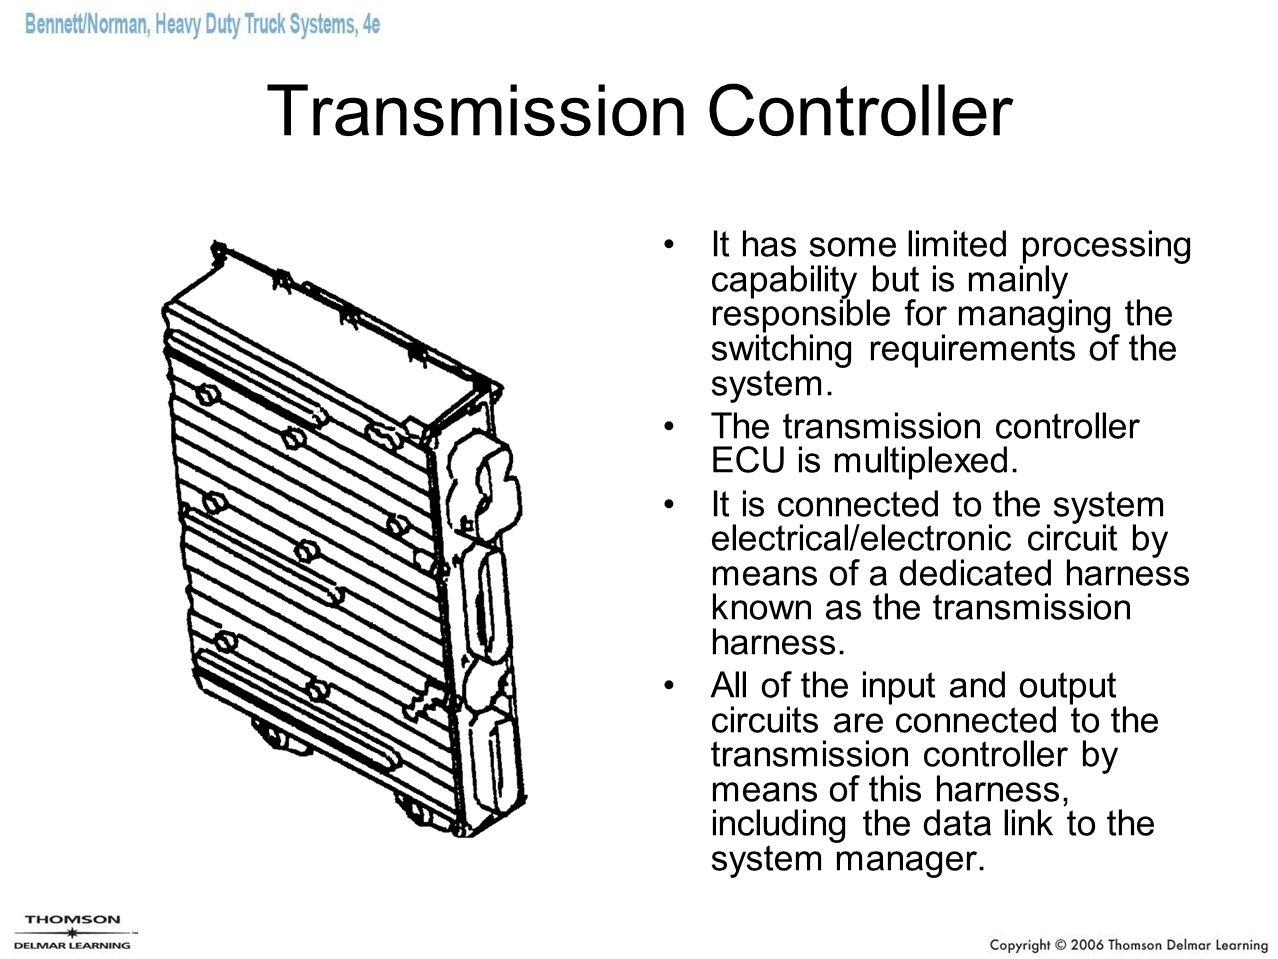 Zf Ecu Wiring Diagram Trusted Electronically Automated Standard Transmissions Ppt Download 4runner Schematic